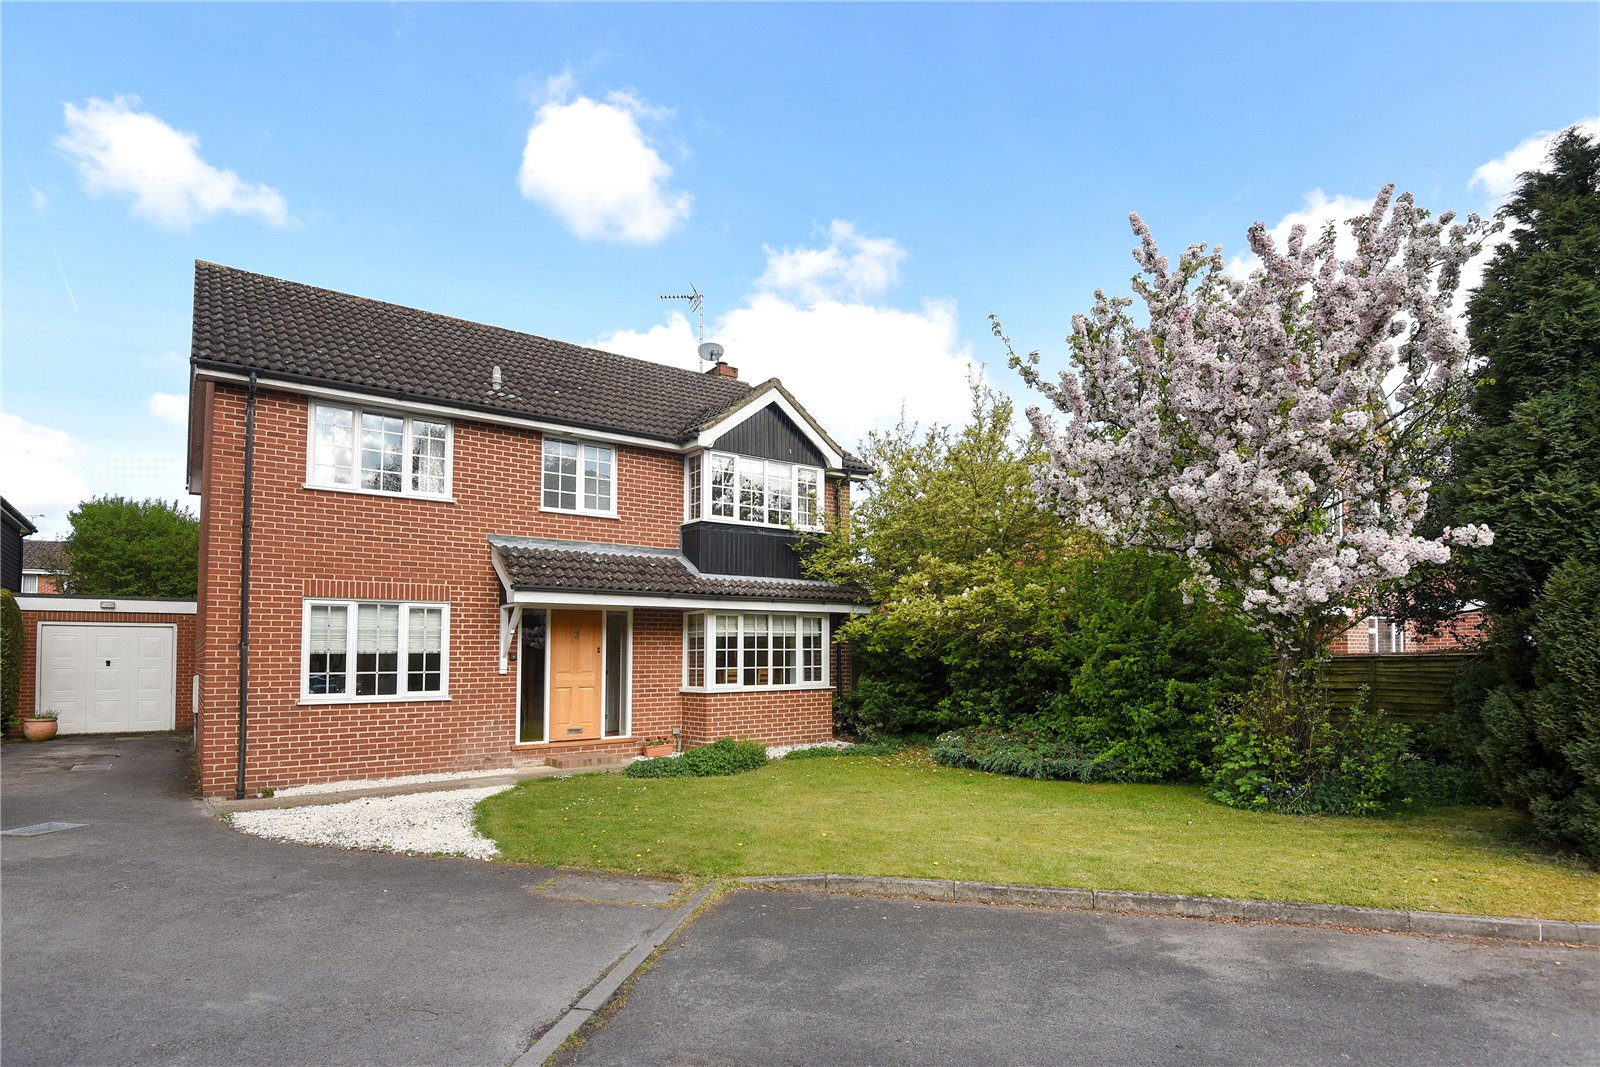 4 Bedrooms Detached House for sale in Washington Gardens, Finchampstead, Berkshire, RG40